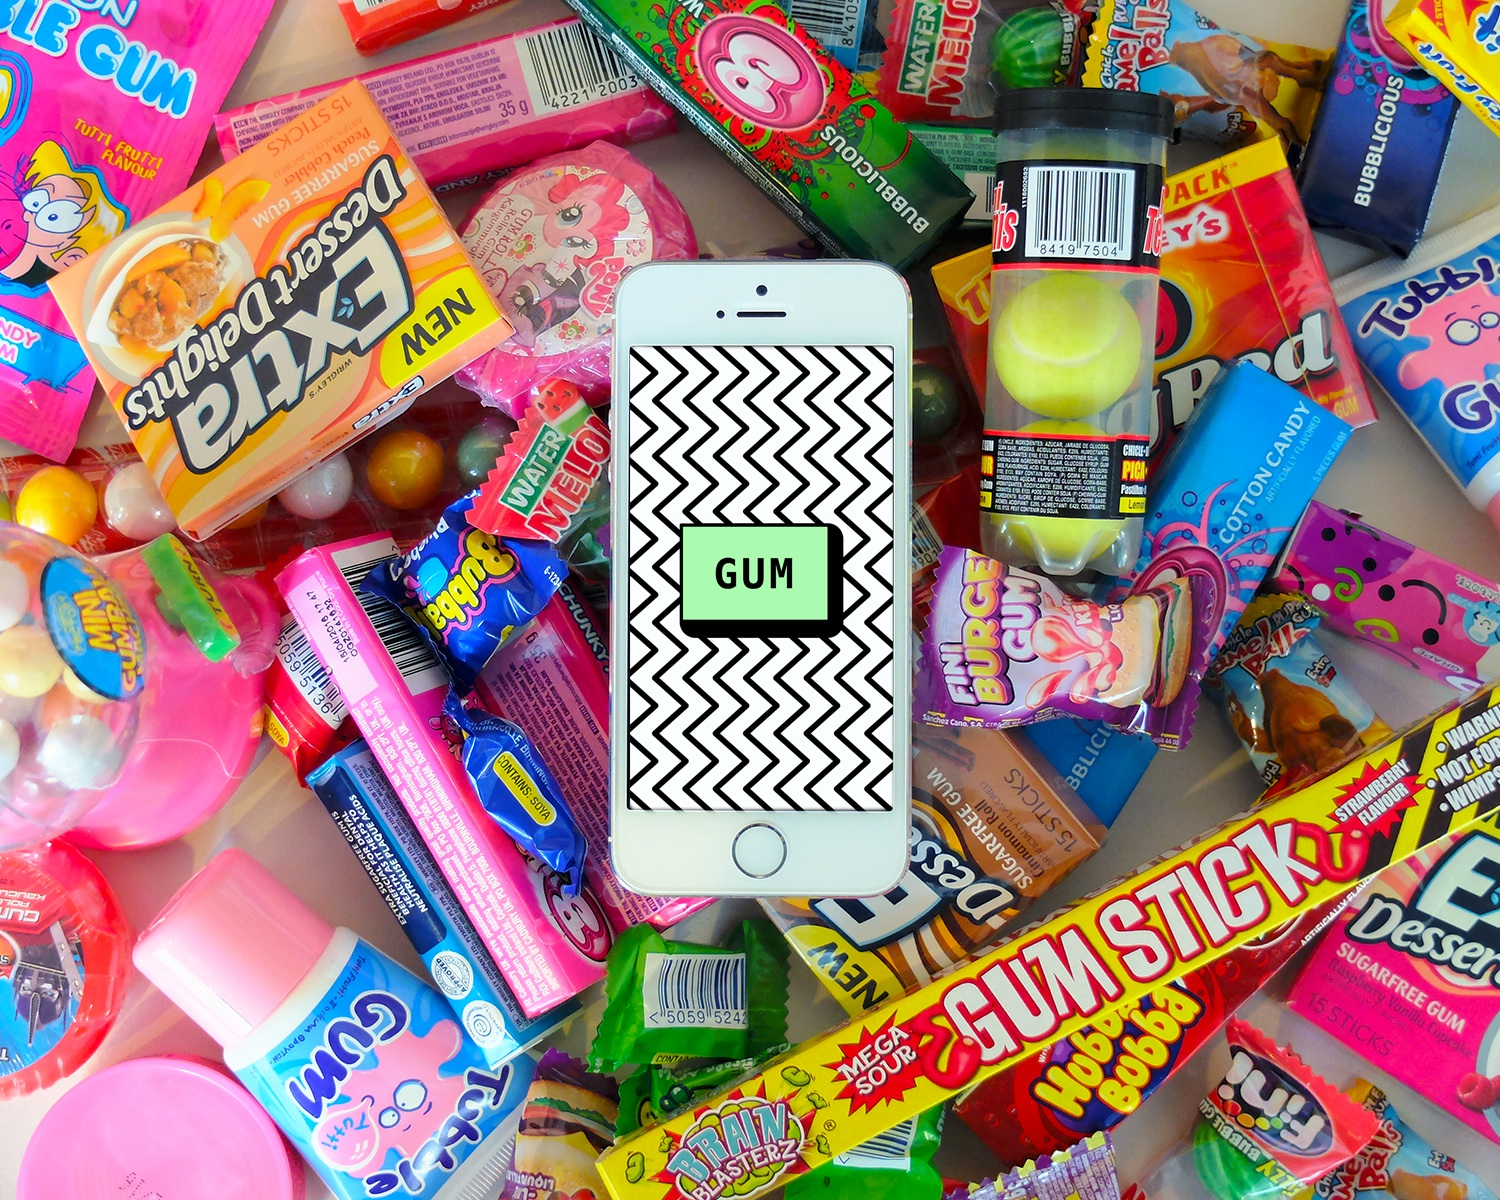 GUM - the social network of things